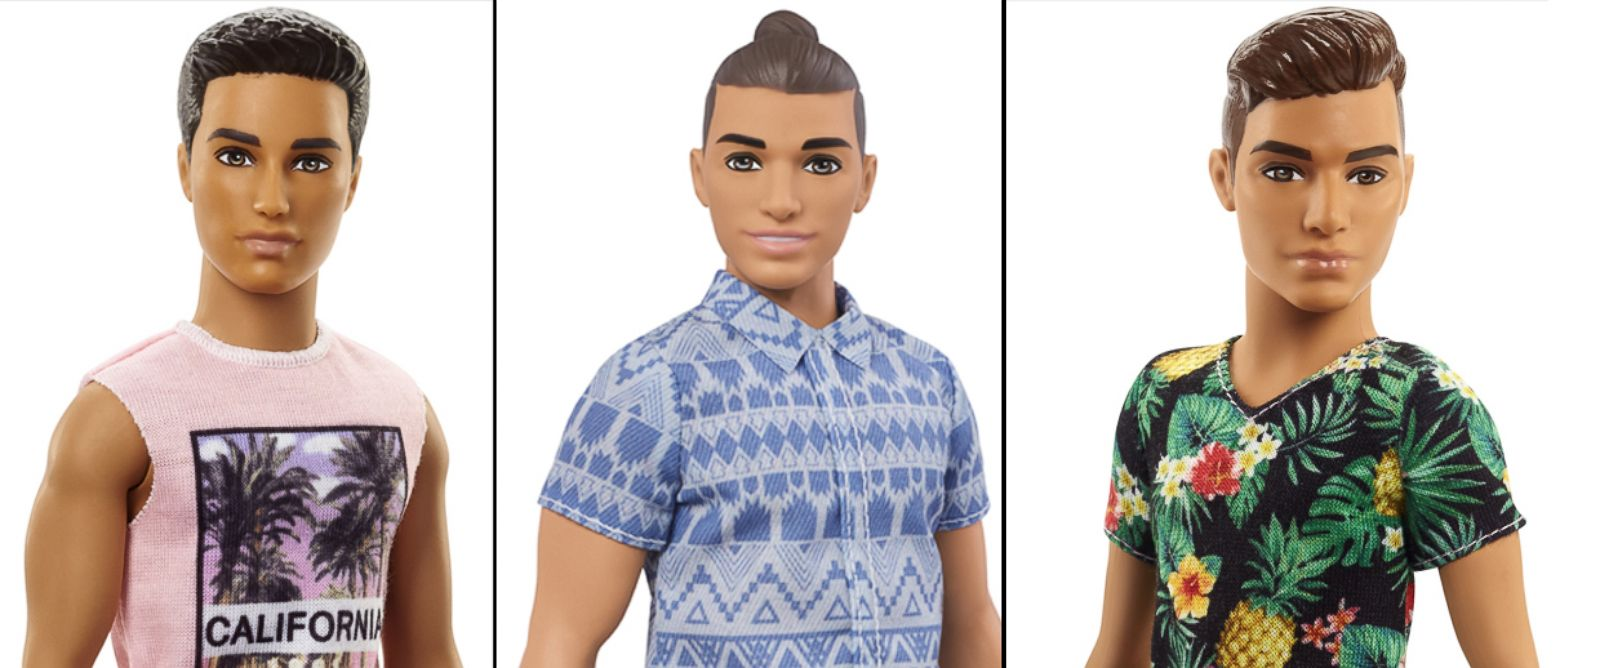 PHOTO: Three of the 15 new Ken dolls released by Mattel.